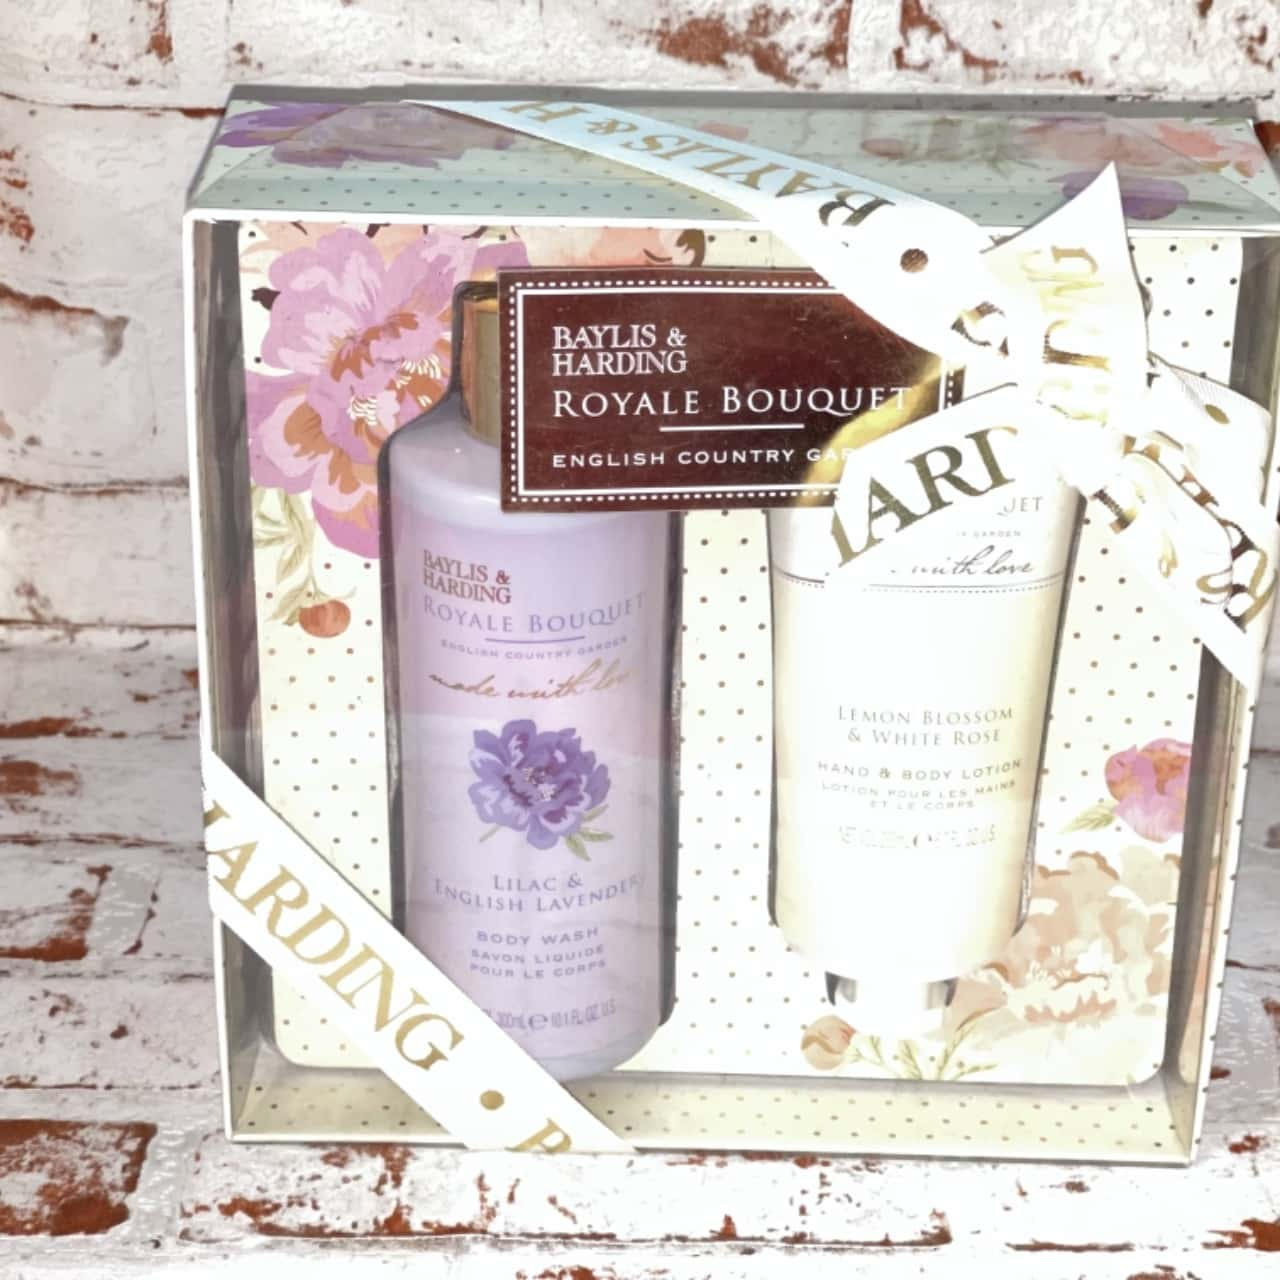 Raylis and Harding Royal Bouquet English Garden Body Wash And Hand N Body Lotion 300+200ml Gift Set